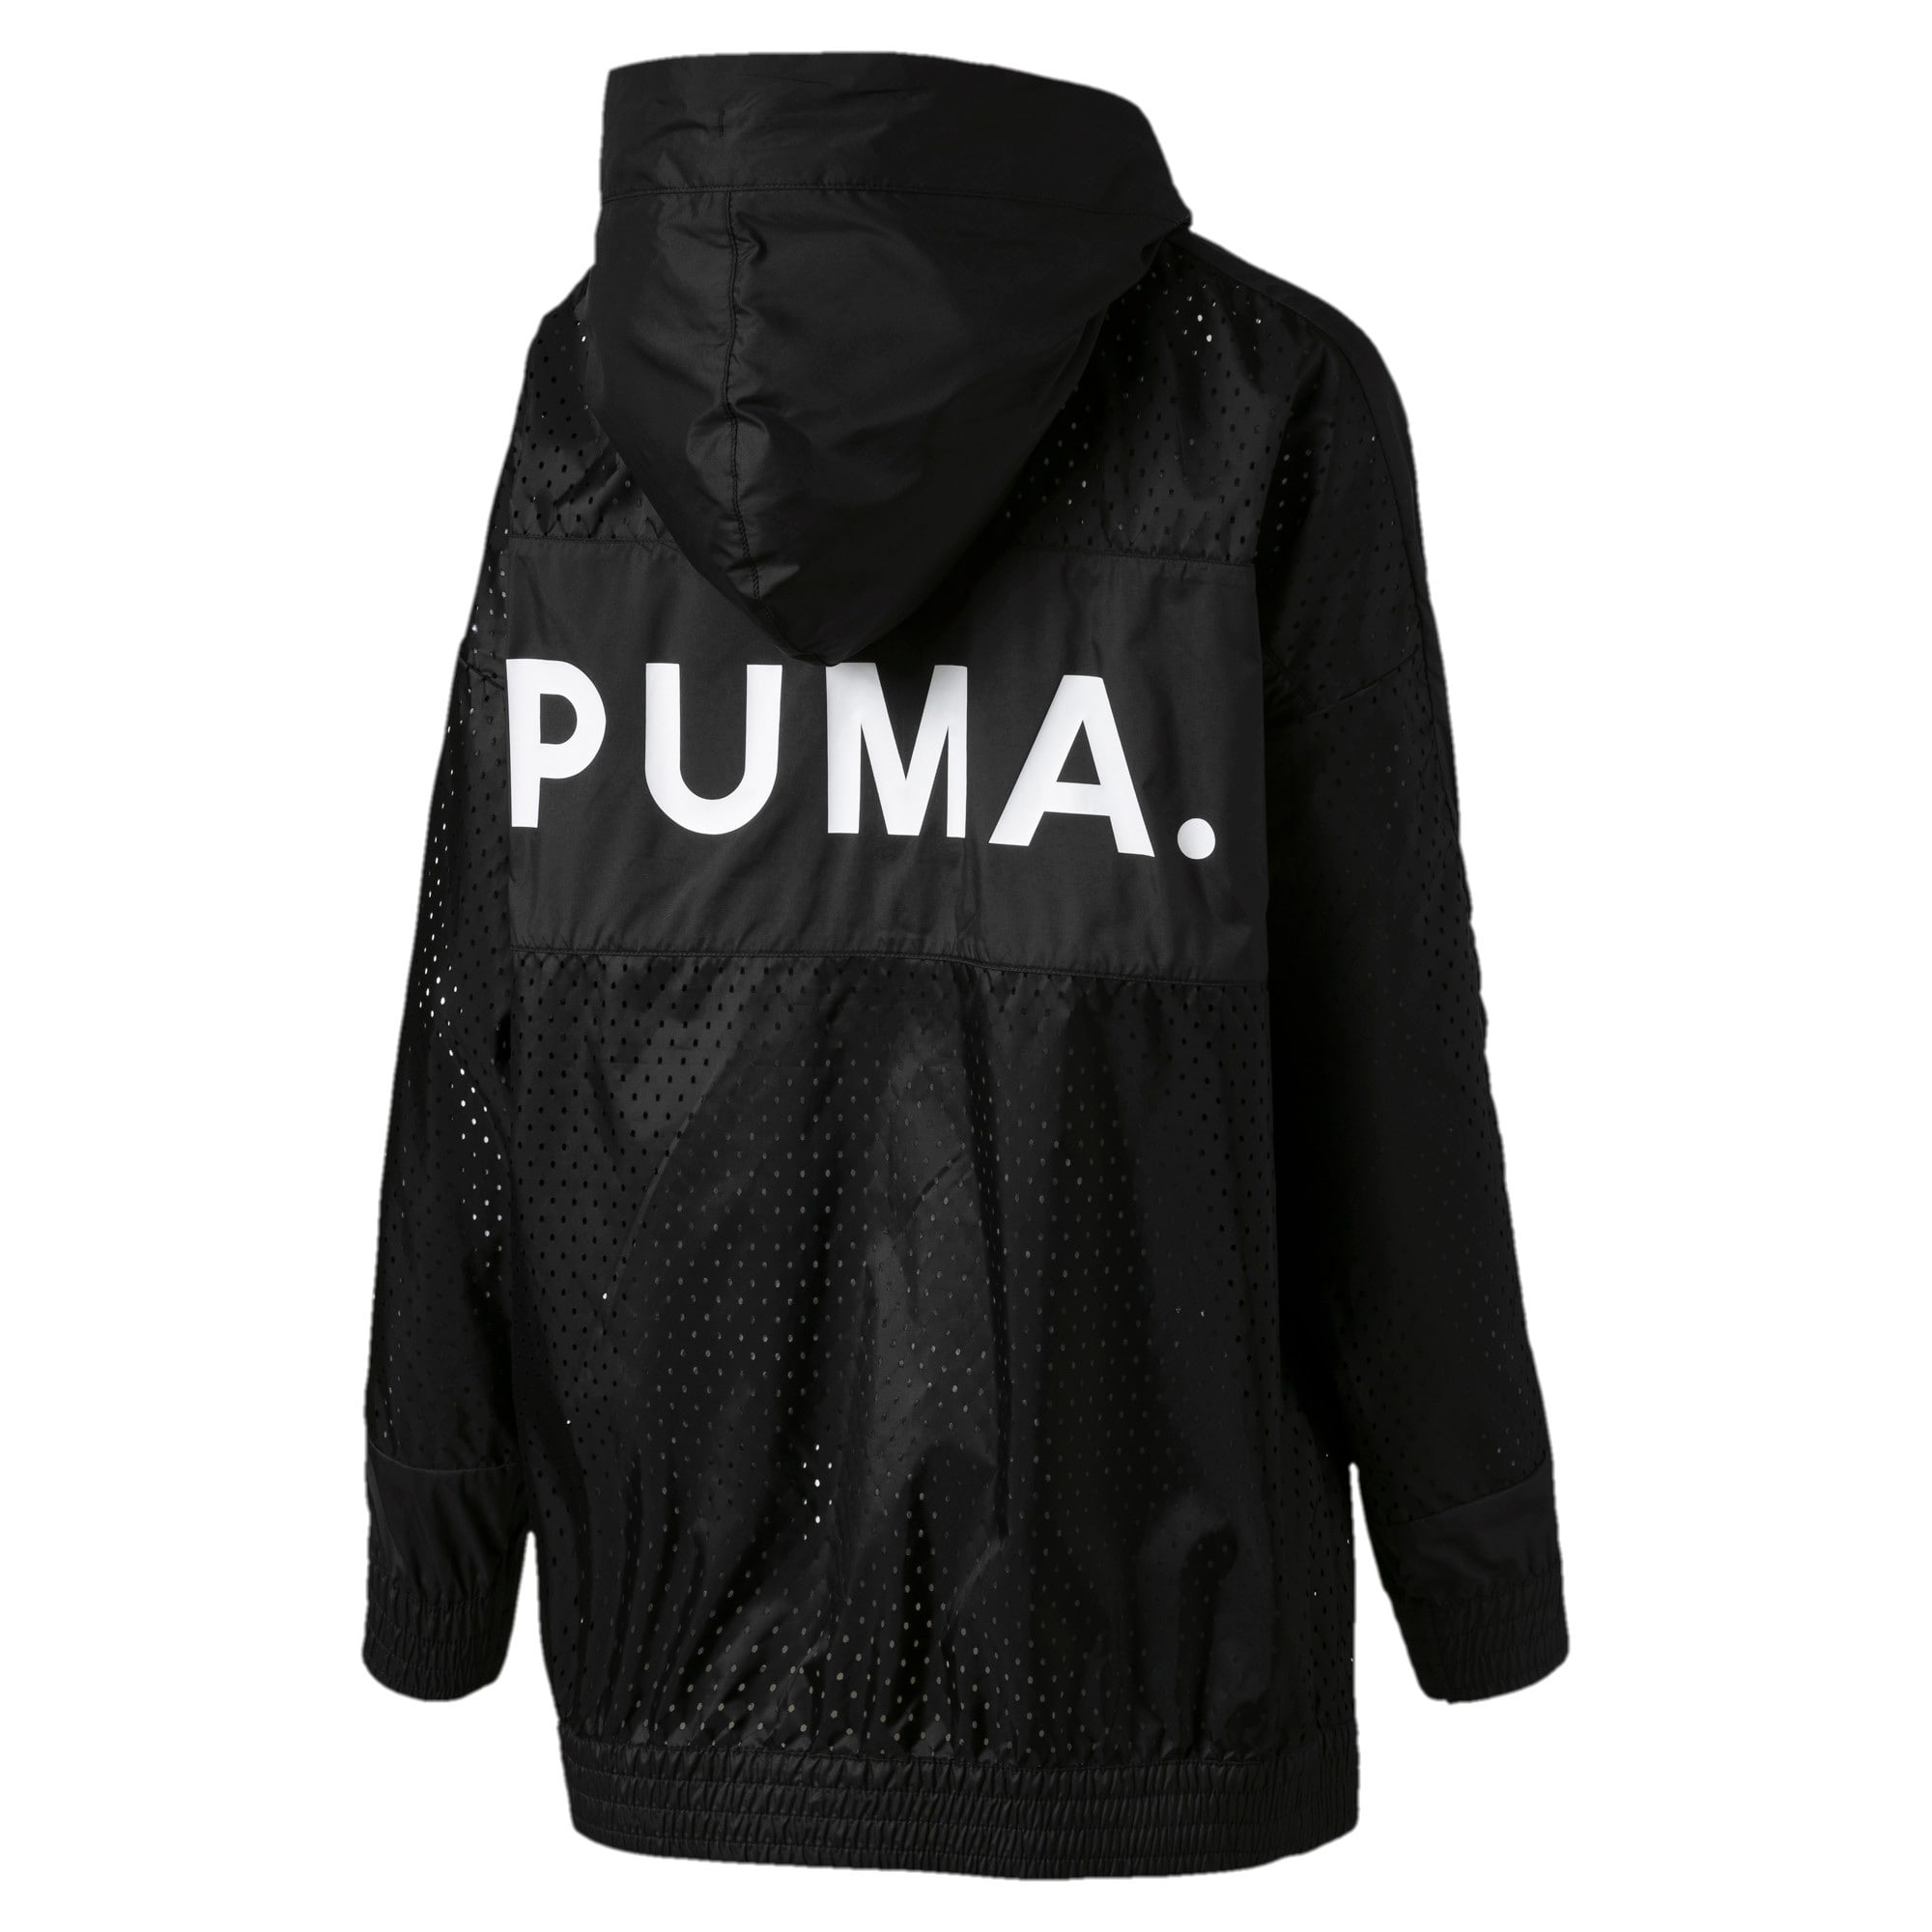 Thumbnail 5 of Chase Woven Full Zip Hooded Women's Jacket, Puma Black, medium-IND